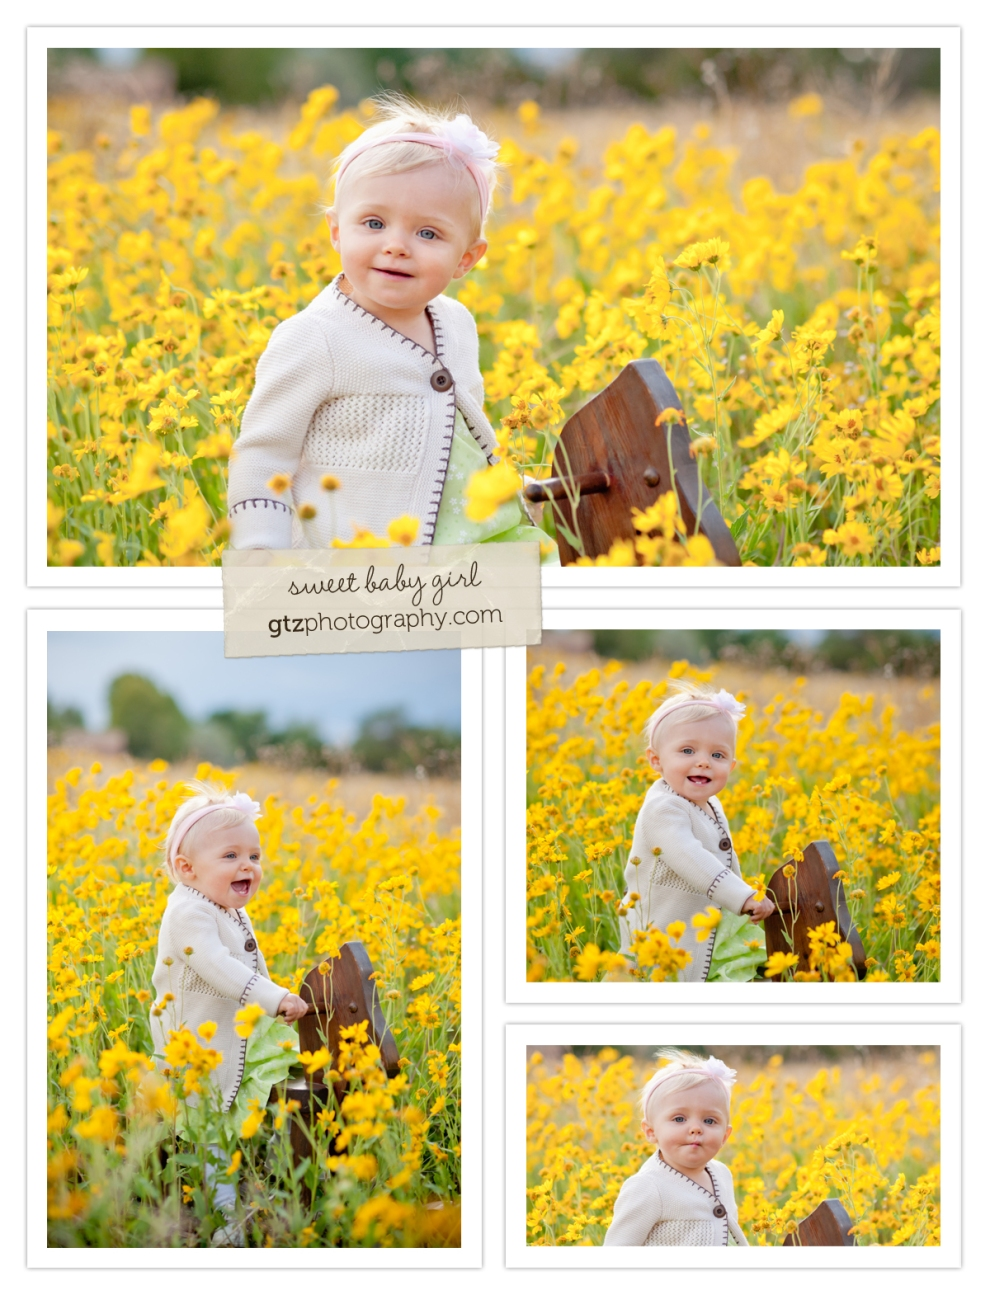 Baby girl on a wooden rocking horse in a field of yellow flowers